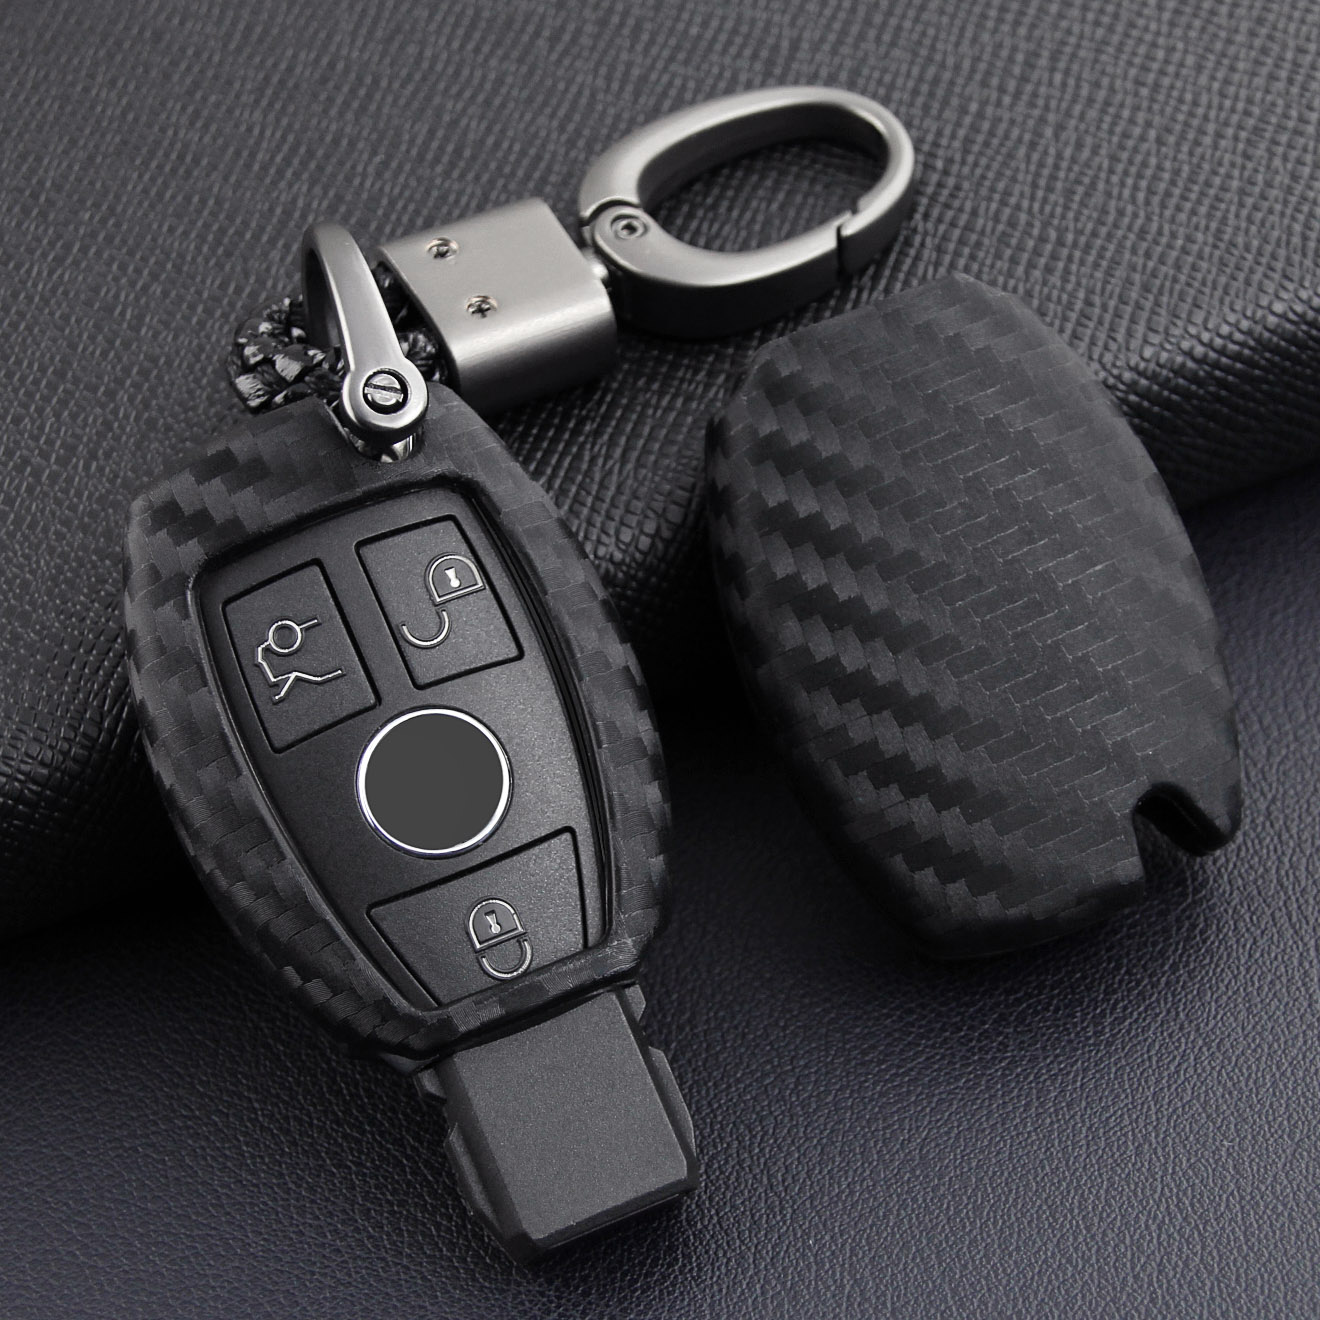 Carbon Fiber Look Key Case Cover Fob For Mercedes-Benz A B C E S CLA GLA GLC GLE W176 W204 W212 X253 W166 X204 Accessories image